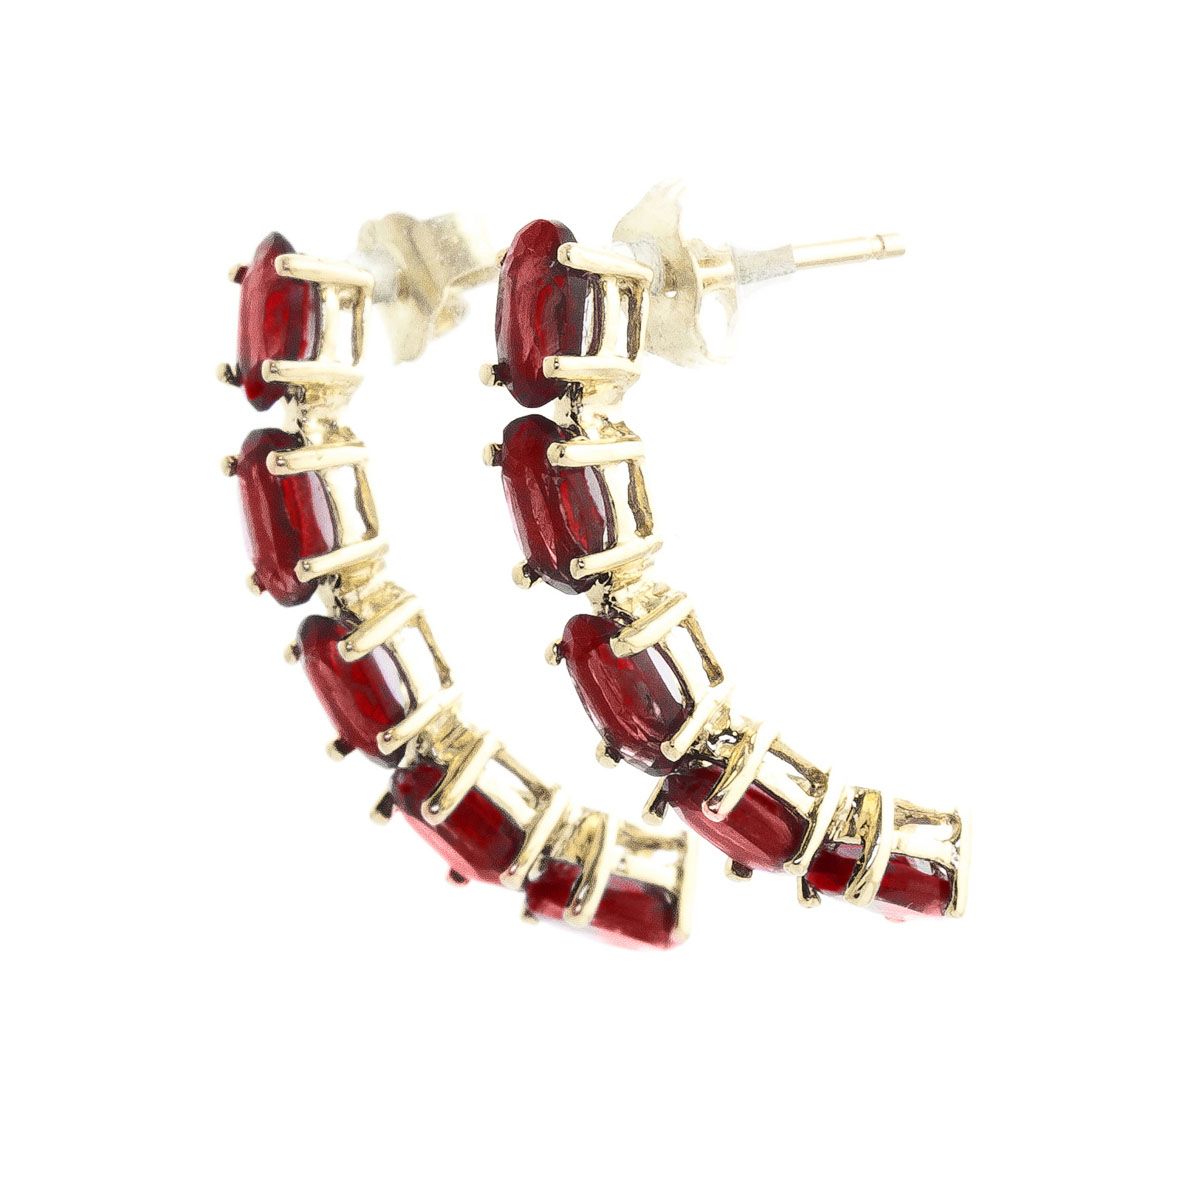 Garnet Linear Stud Earrings 2.5 ctw in 9ct Gold